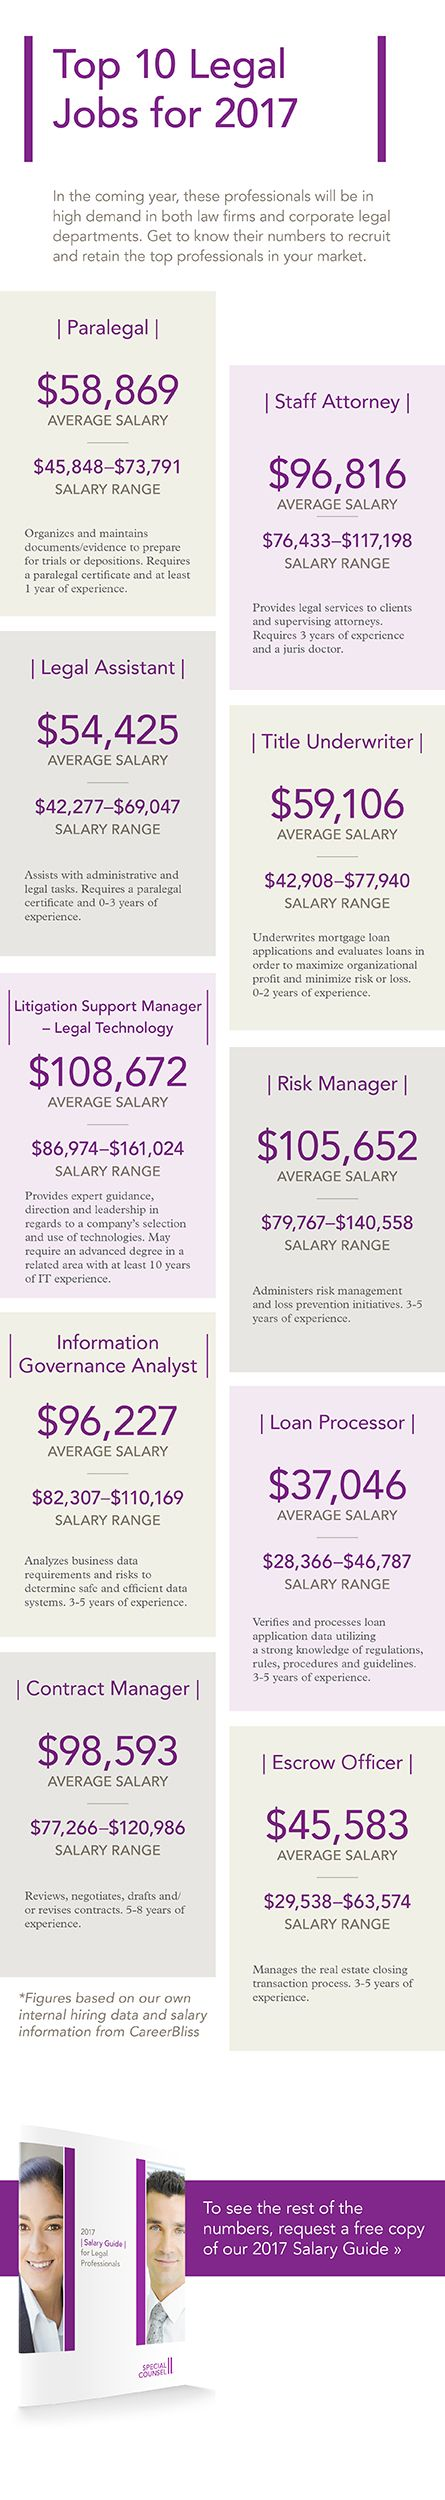 A guide to paralegal and legal job salary rates for 2017.